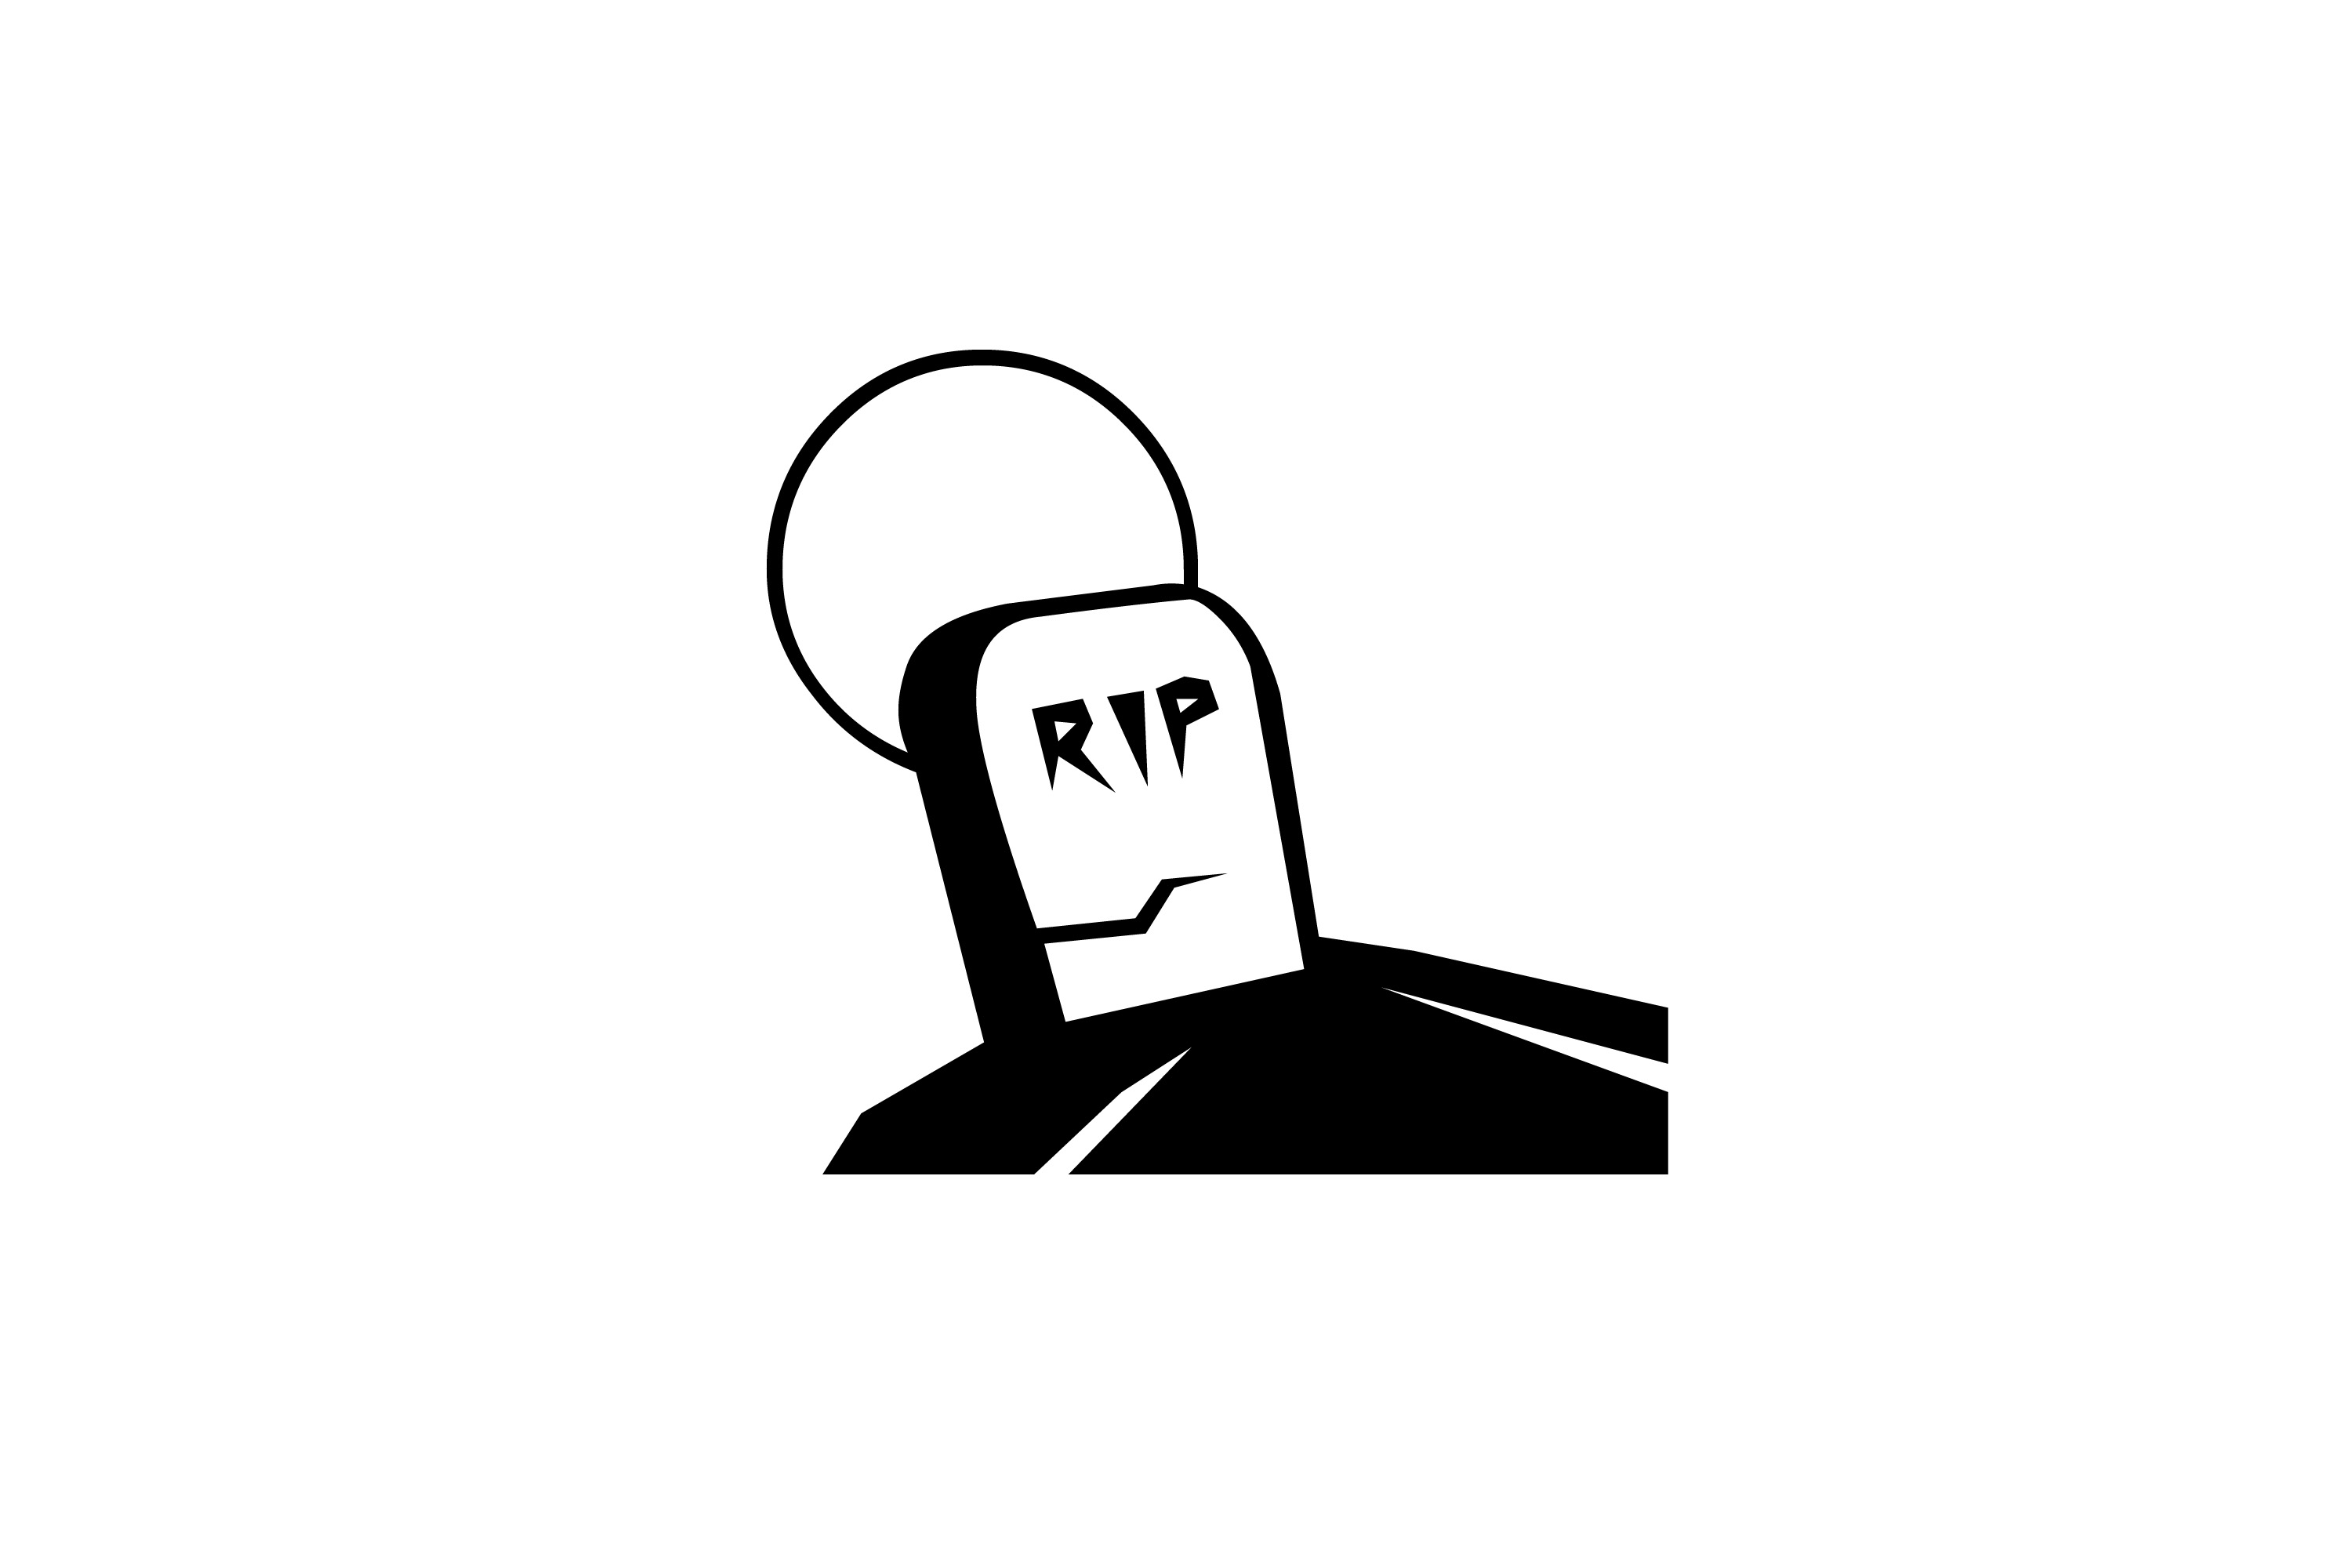 Rip clipart gravestone. Image of headstone creepyhalloweenimages